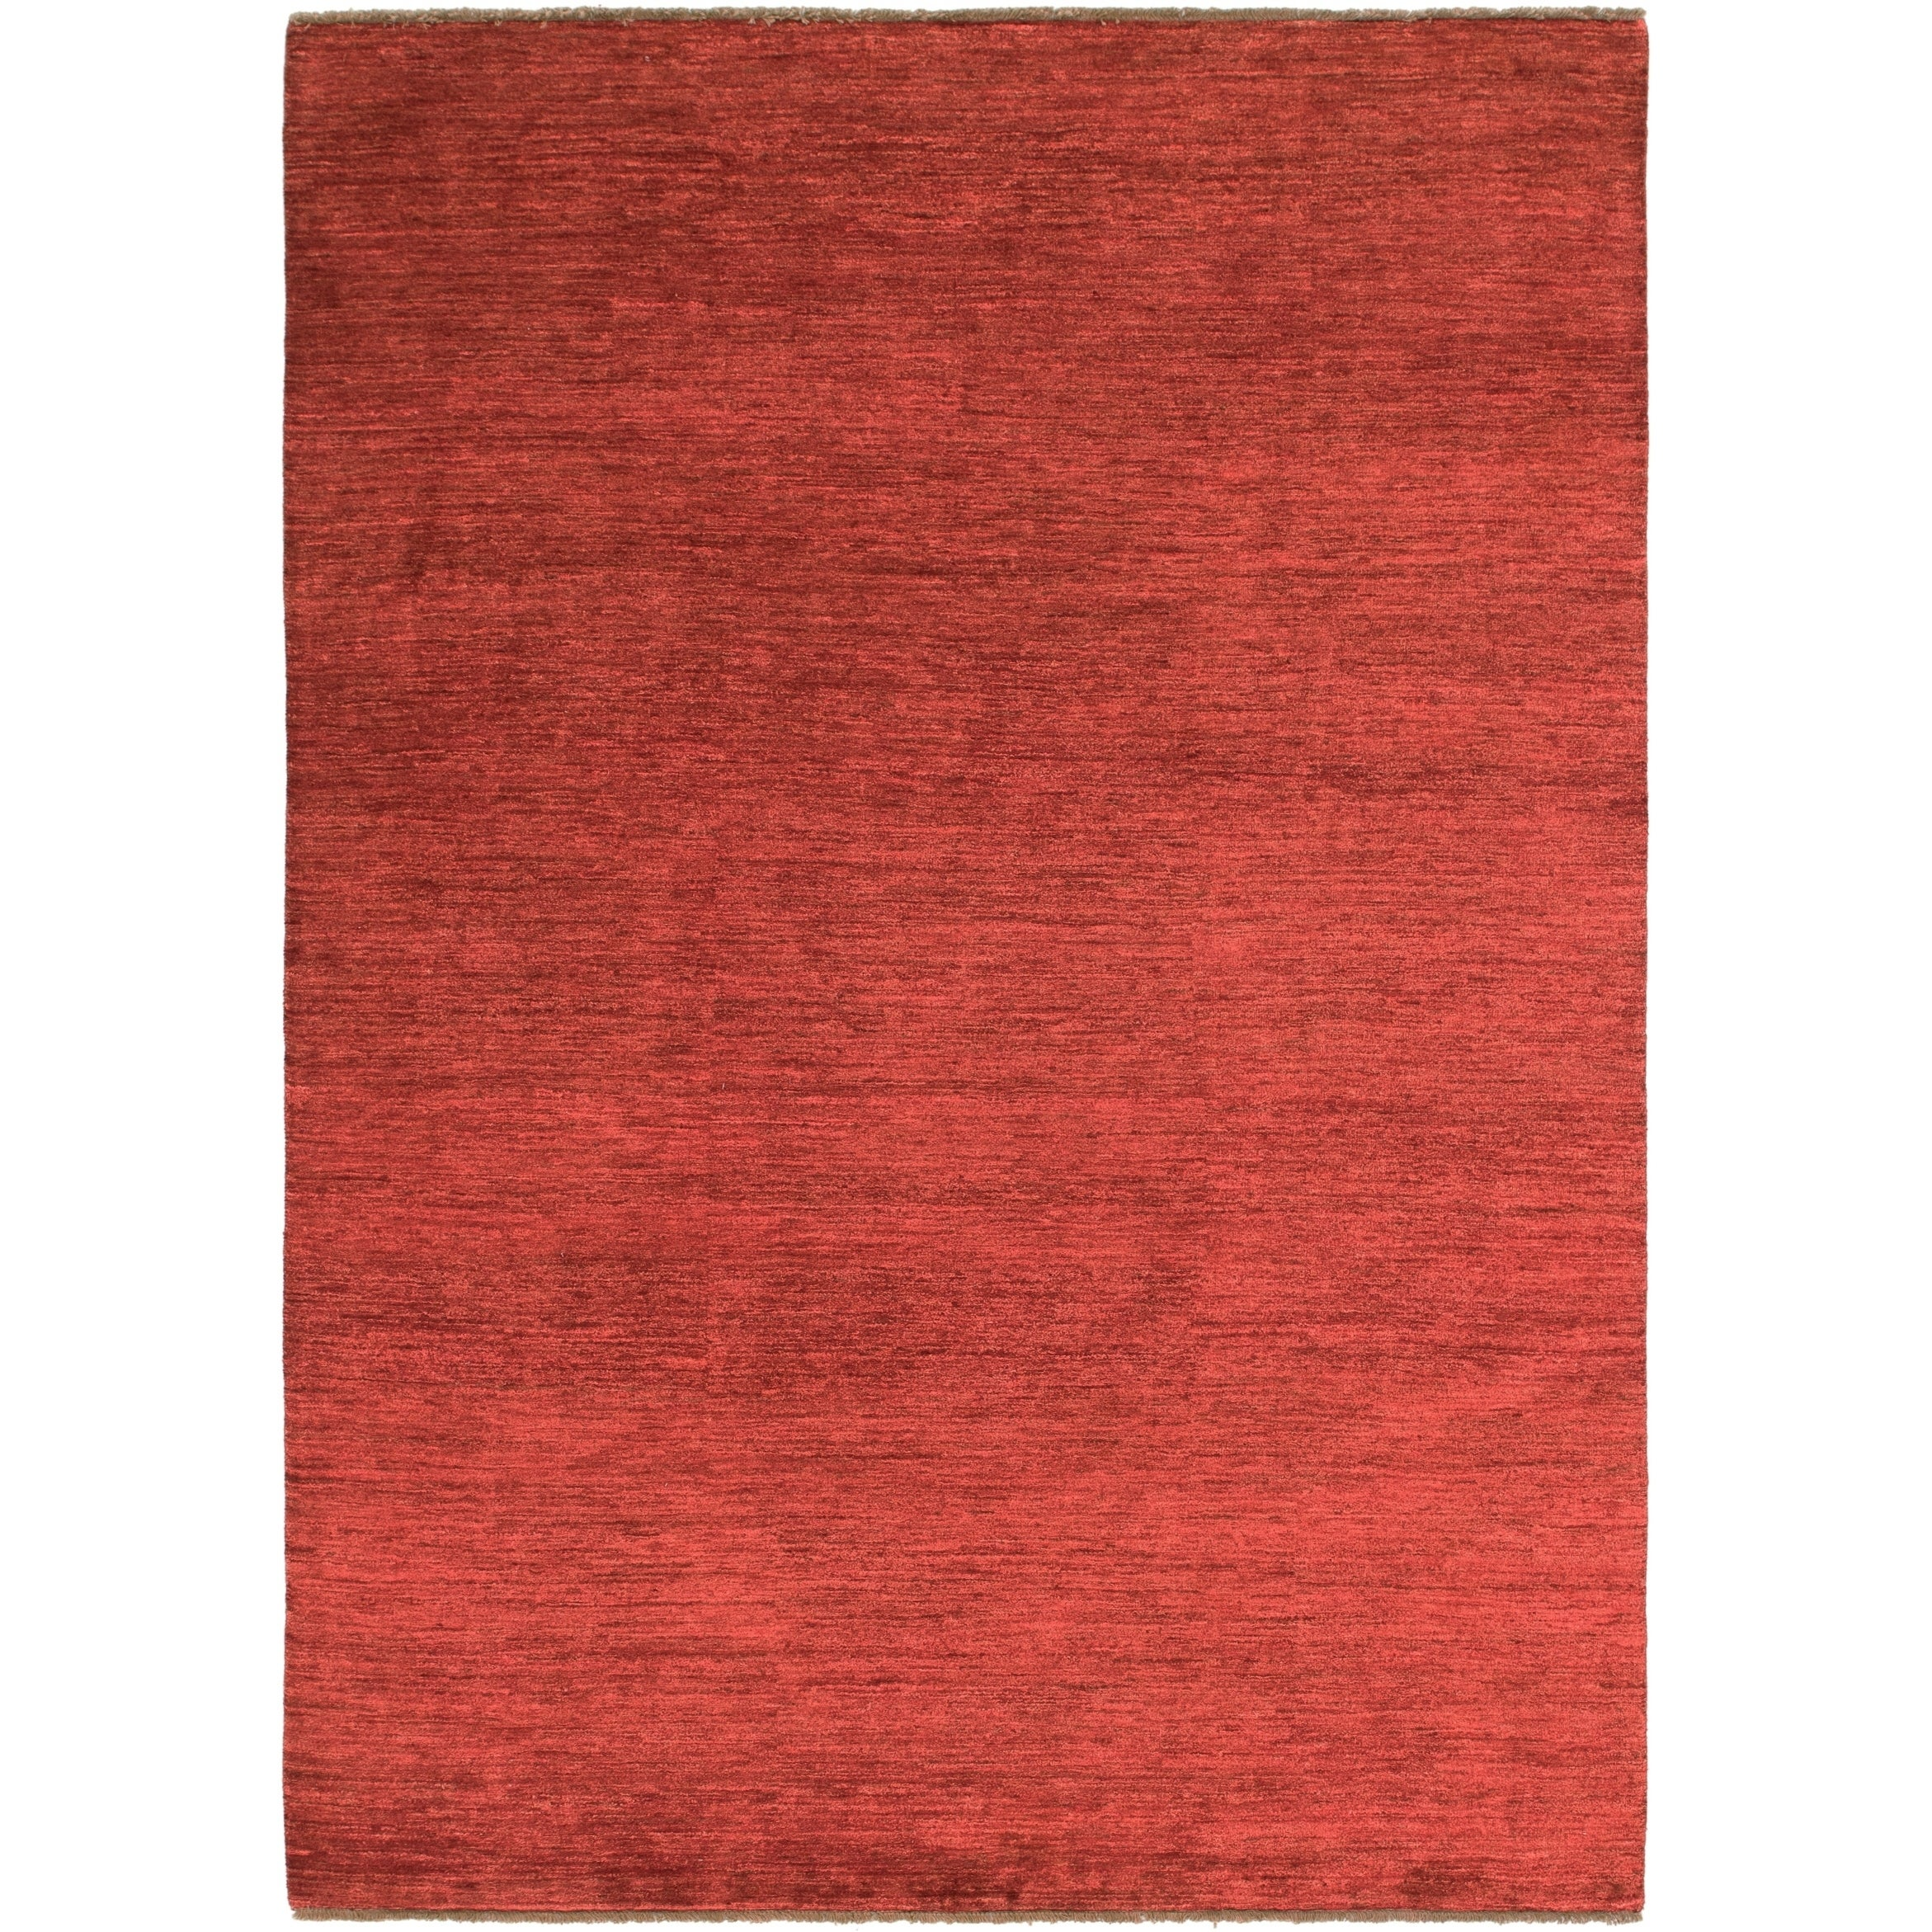 Hand Knotted Kashkuli Gabbeh Wool Area Rug - 6 9 x 9 6 (Red - 6 9 x 9 6)